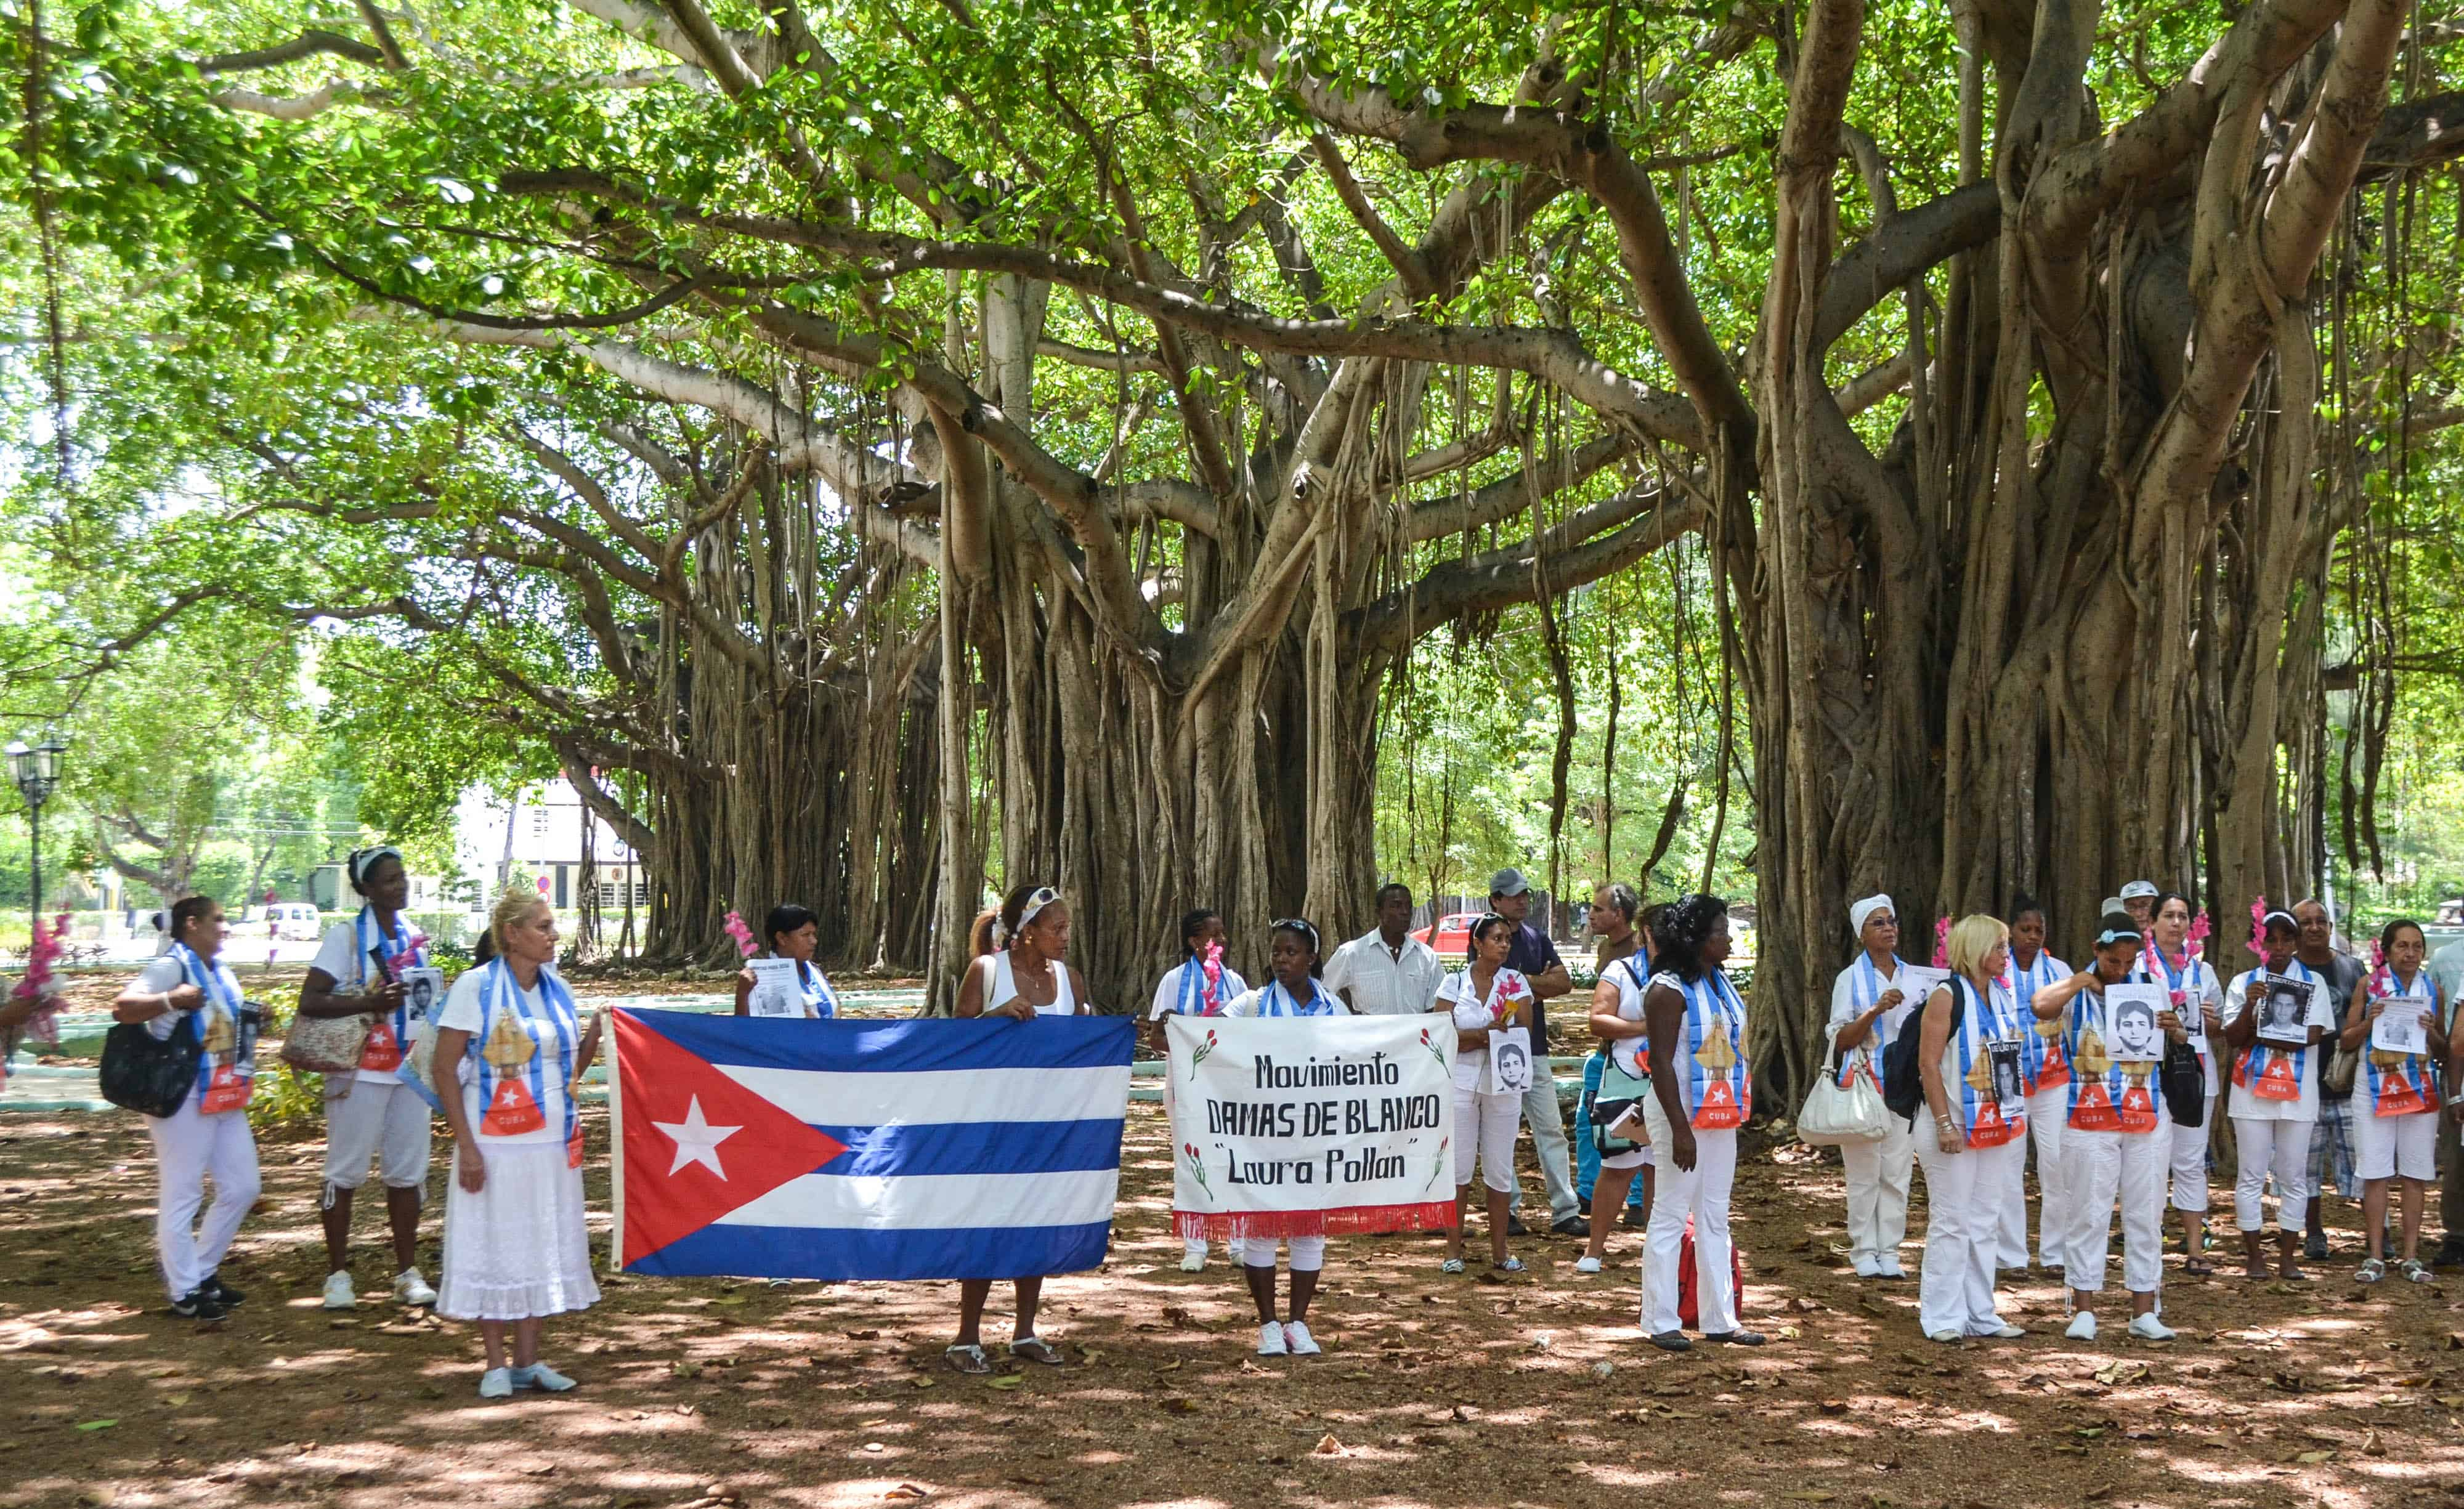 Cuban dissidents and members of the Ladies in White human rights group hold a Cuban national flag and pictures of imprisoned dissidents.